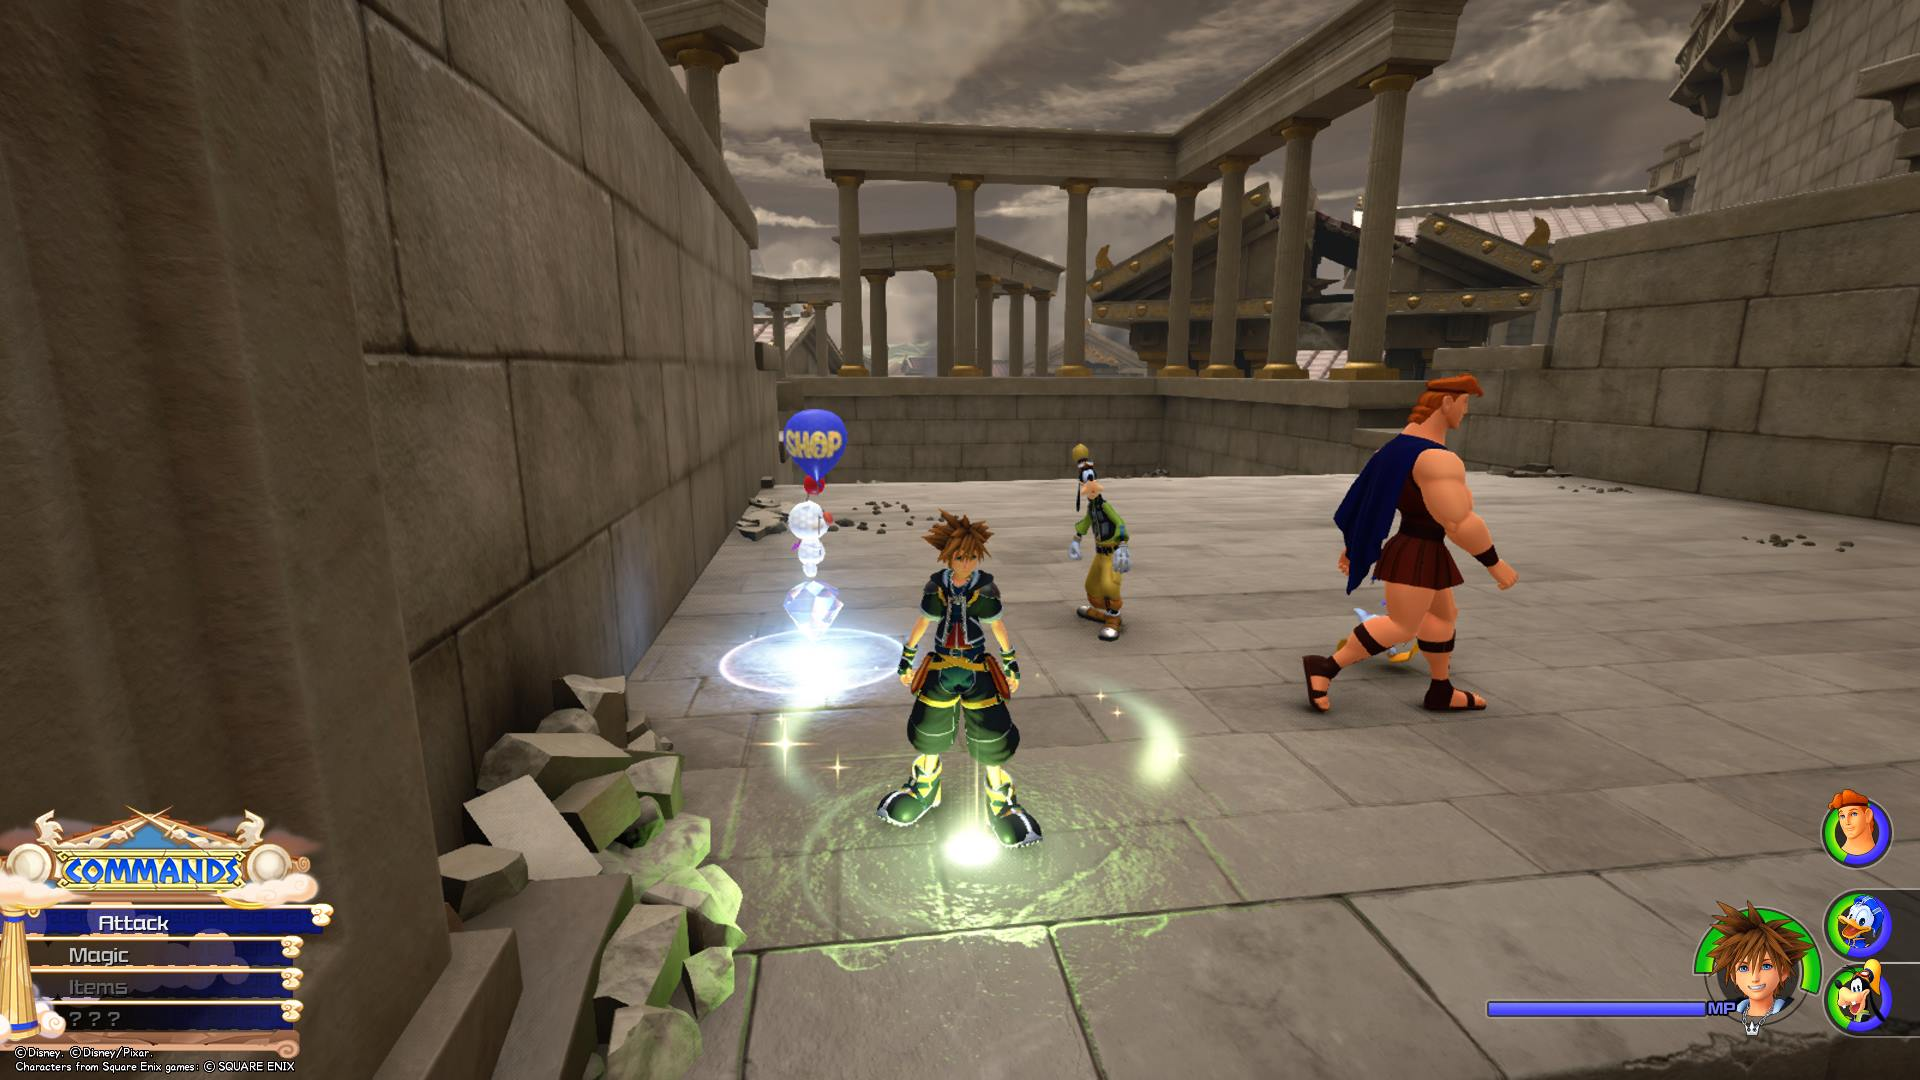 To save the game in Kingdom Hearts 3, you'll want to find and interact with save points.